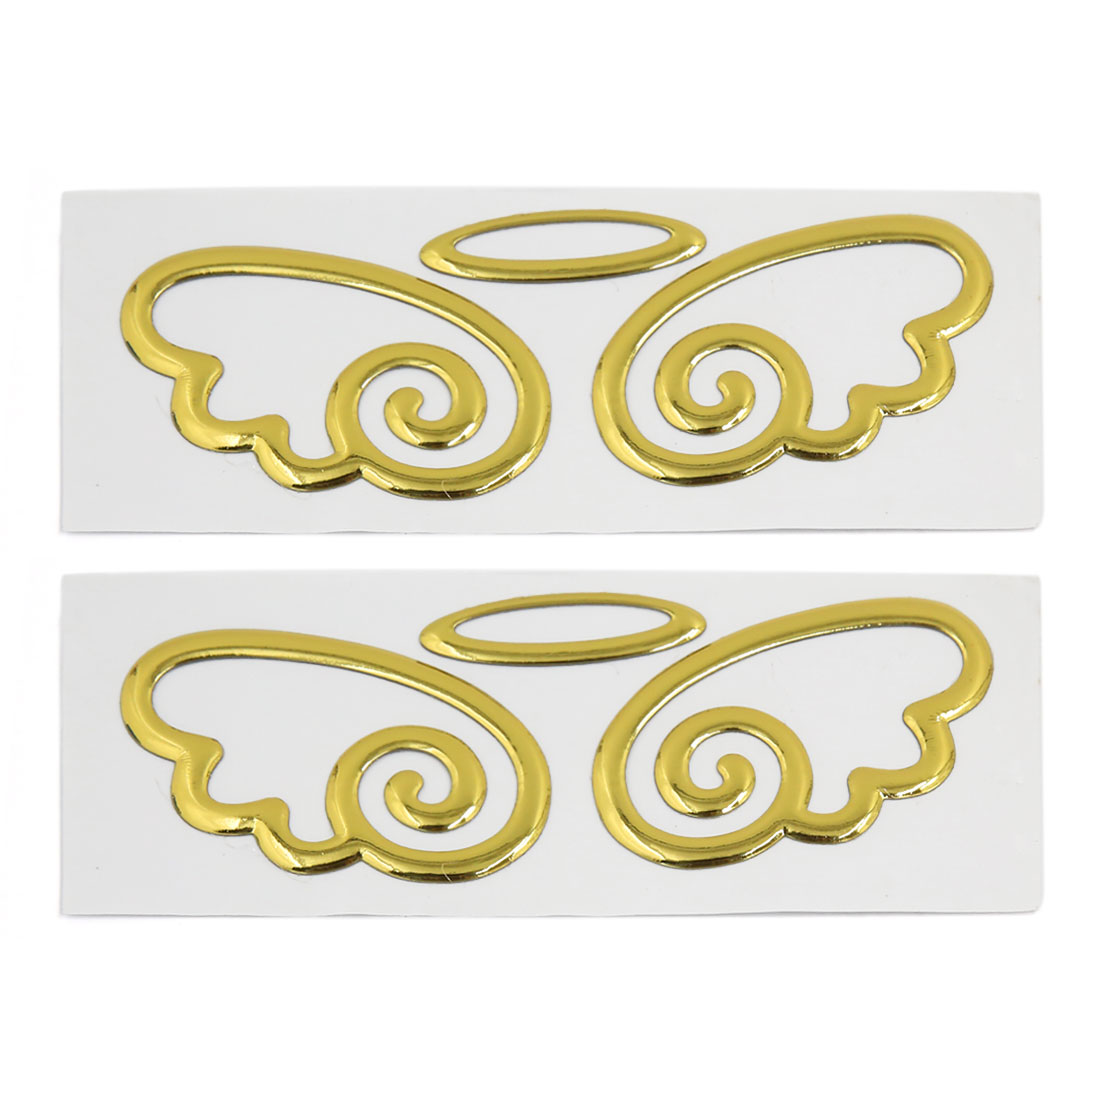 Gold Tone 3D Wing Shaped Stick-on Decorative Sticker Graphic Decals 2pcs for Car